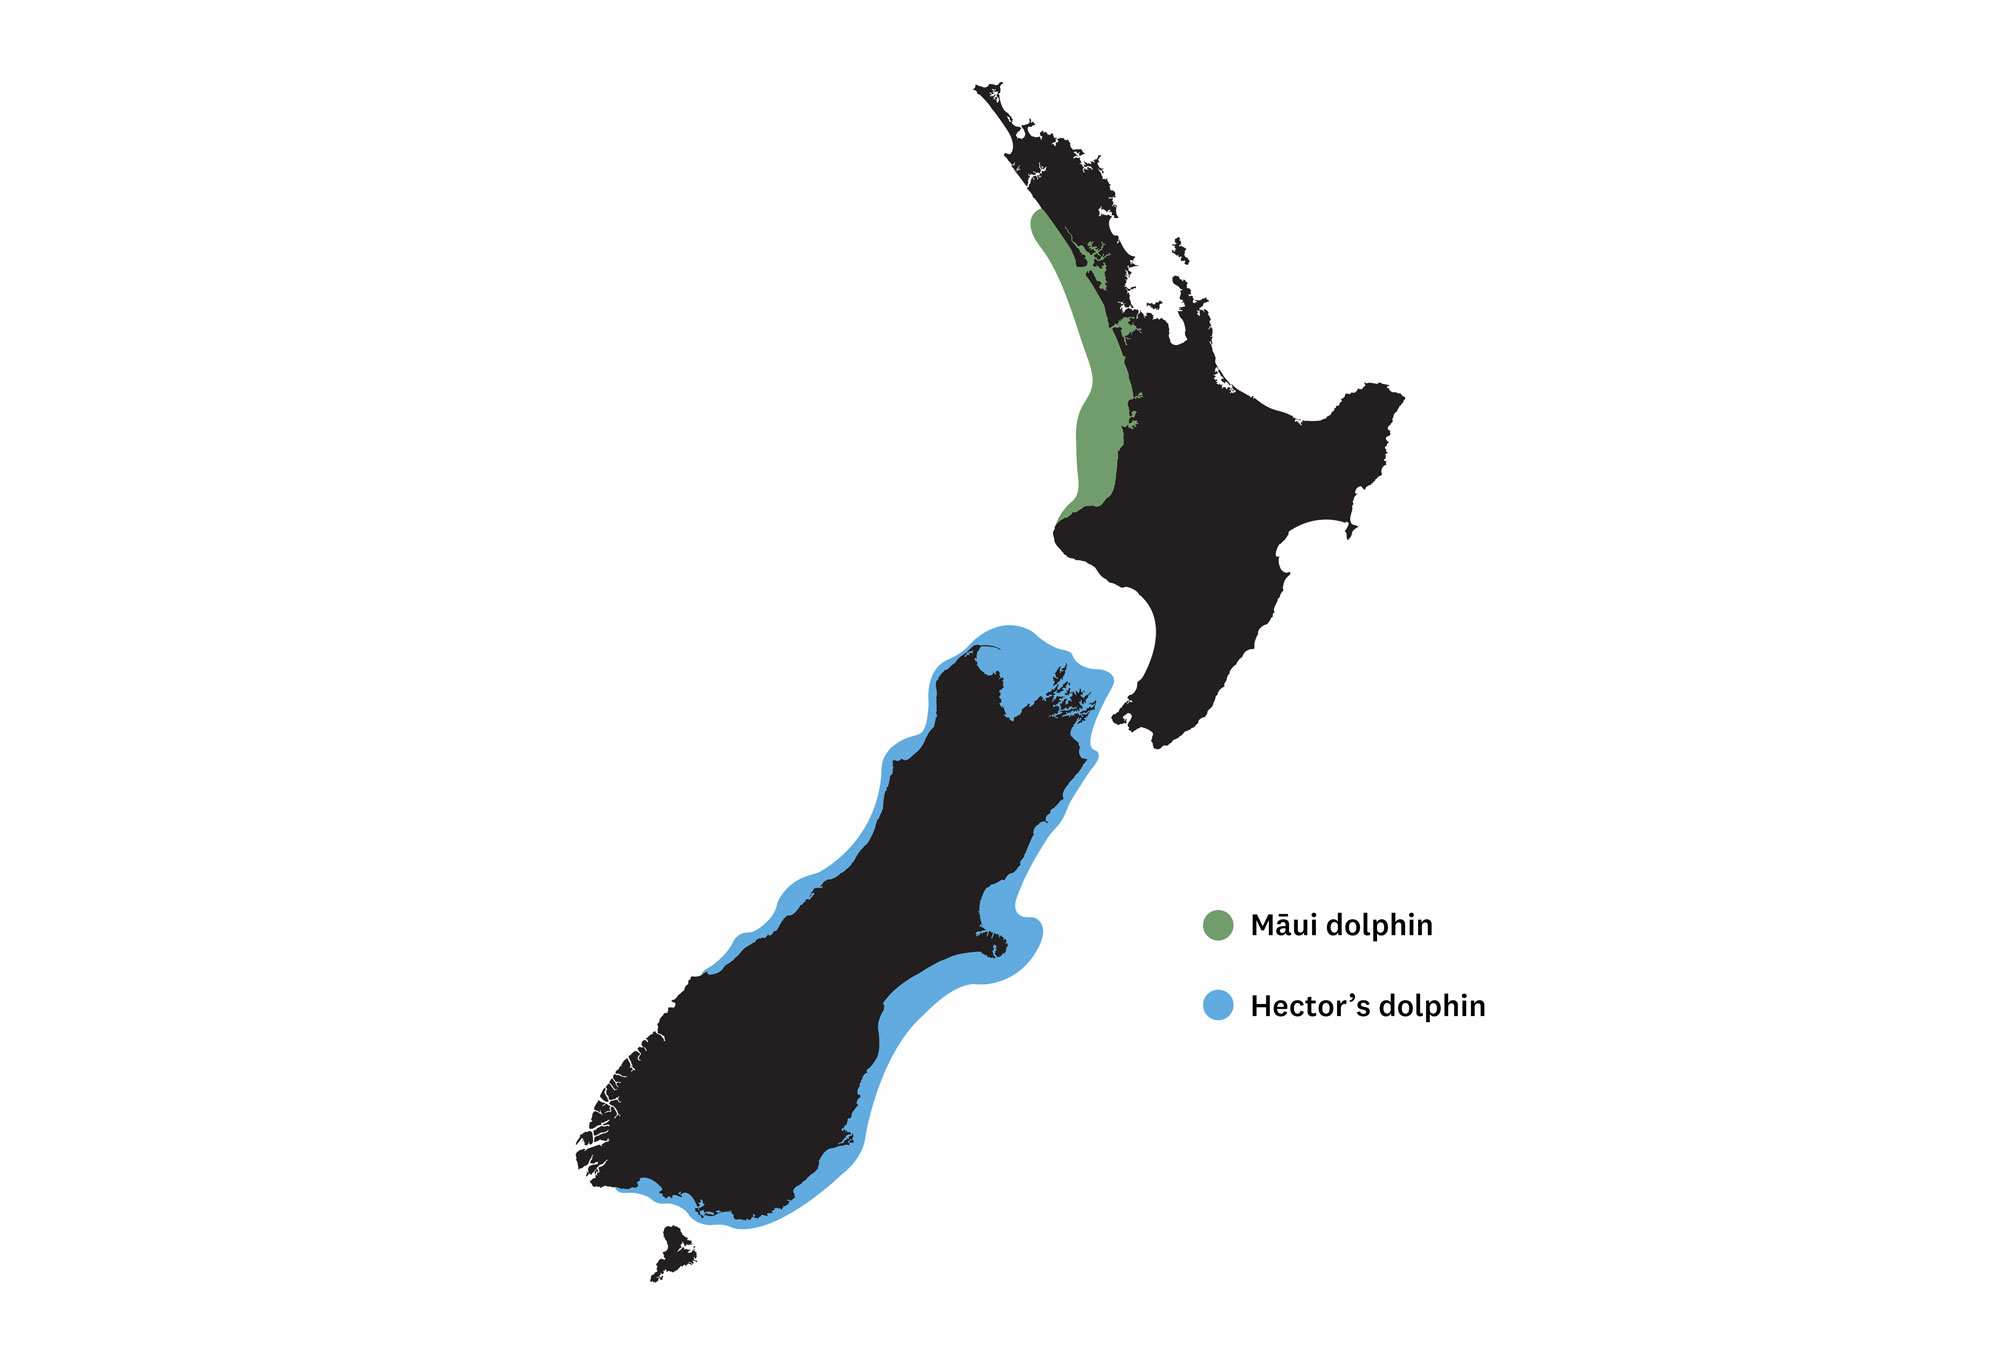 Illustration of New Zealand with the North Island outlined in green and the South Island outlined in blue.